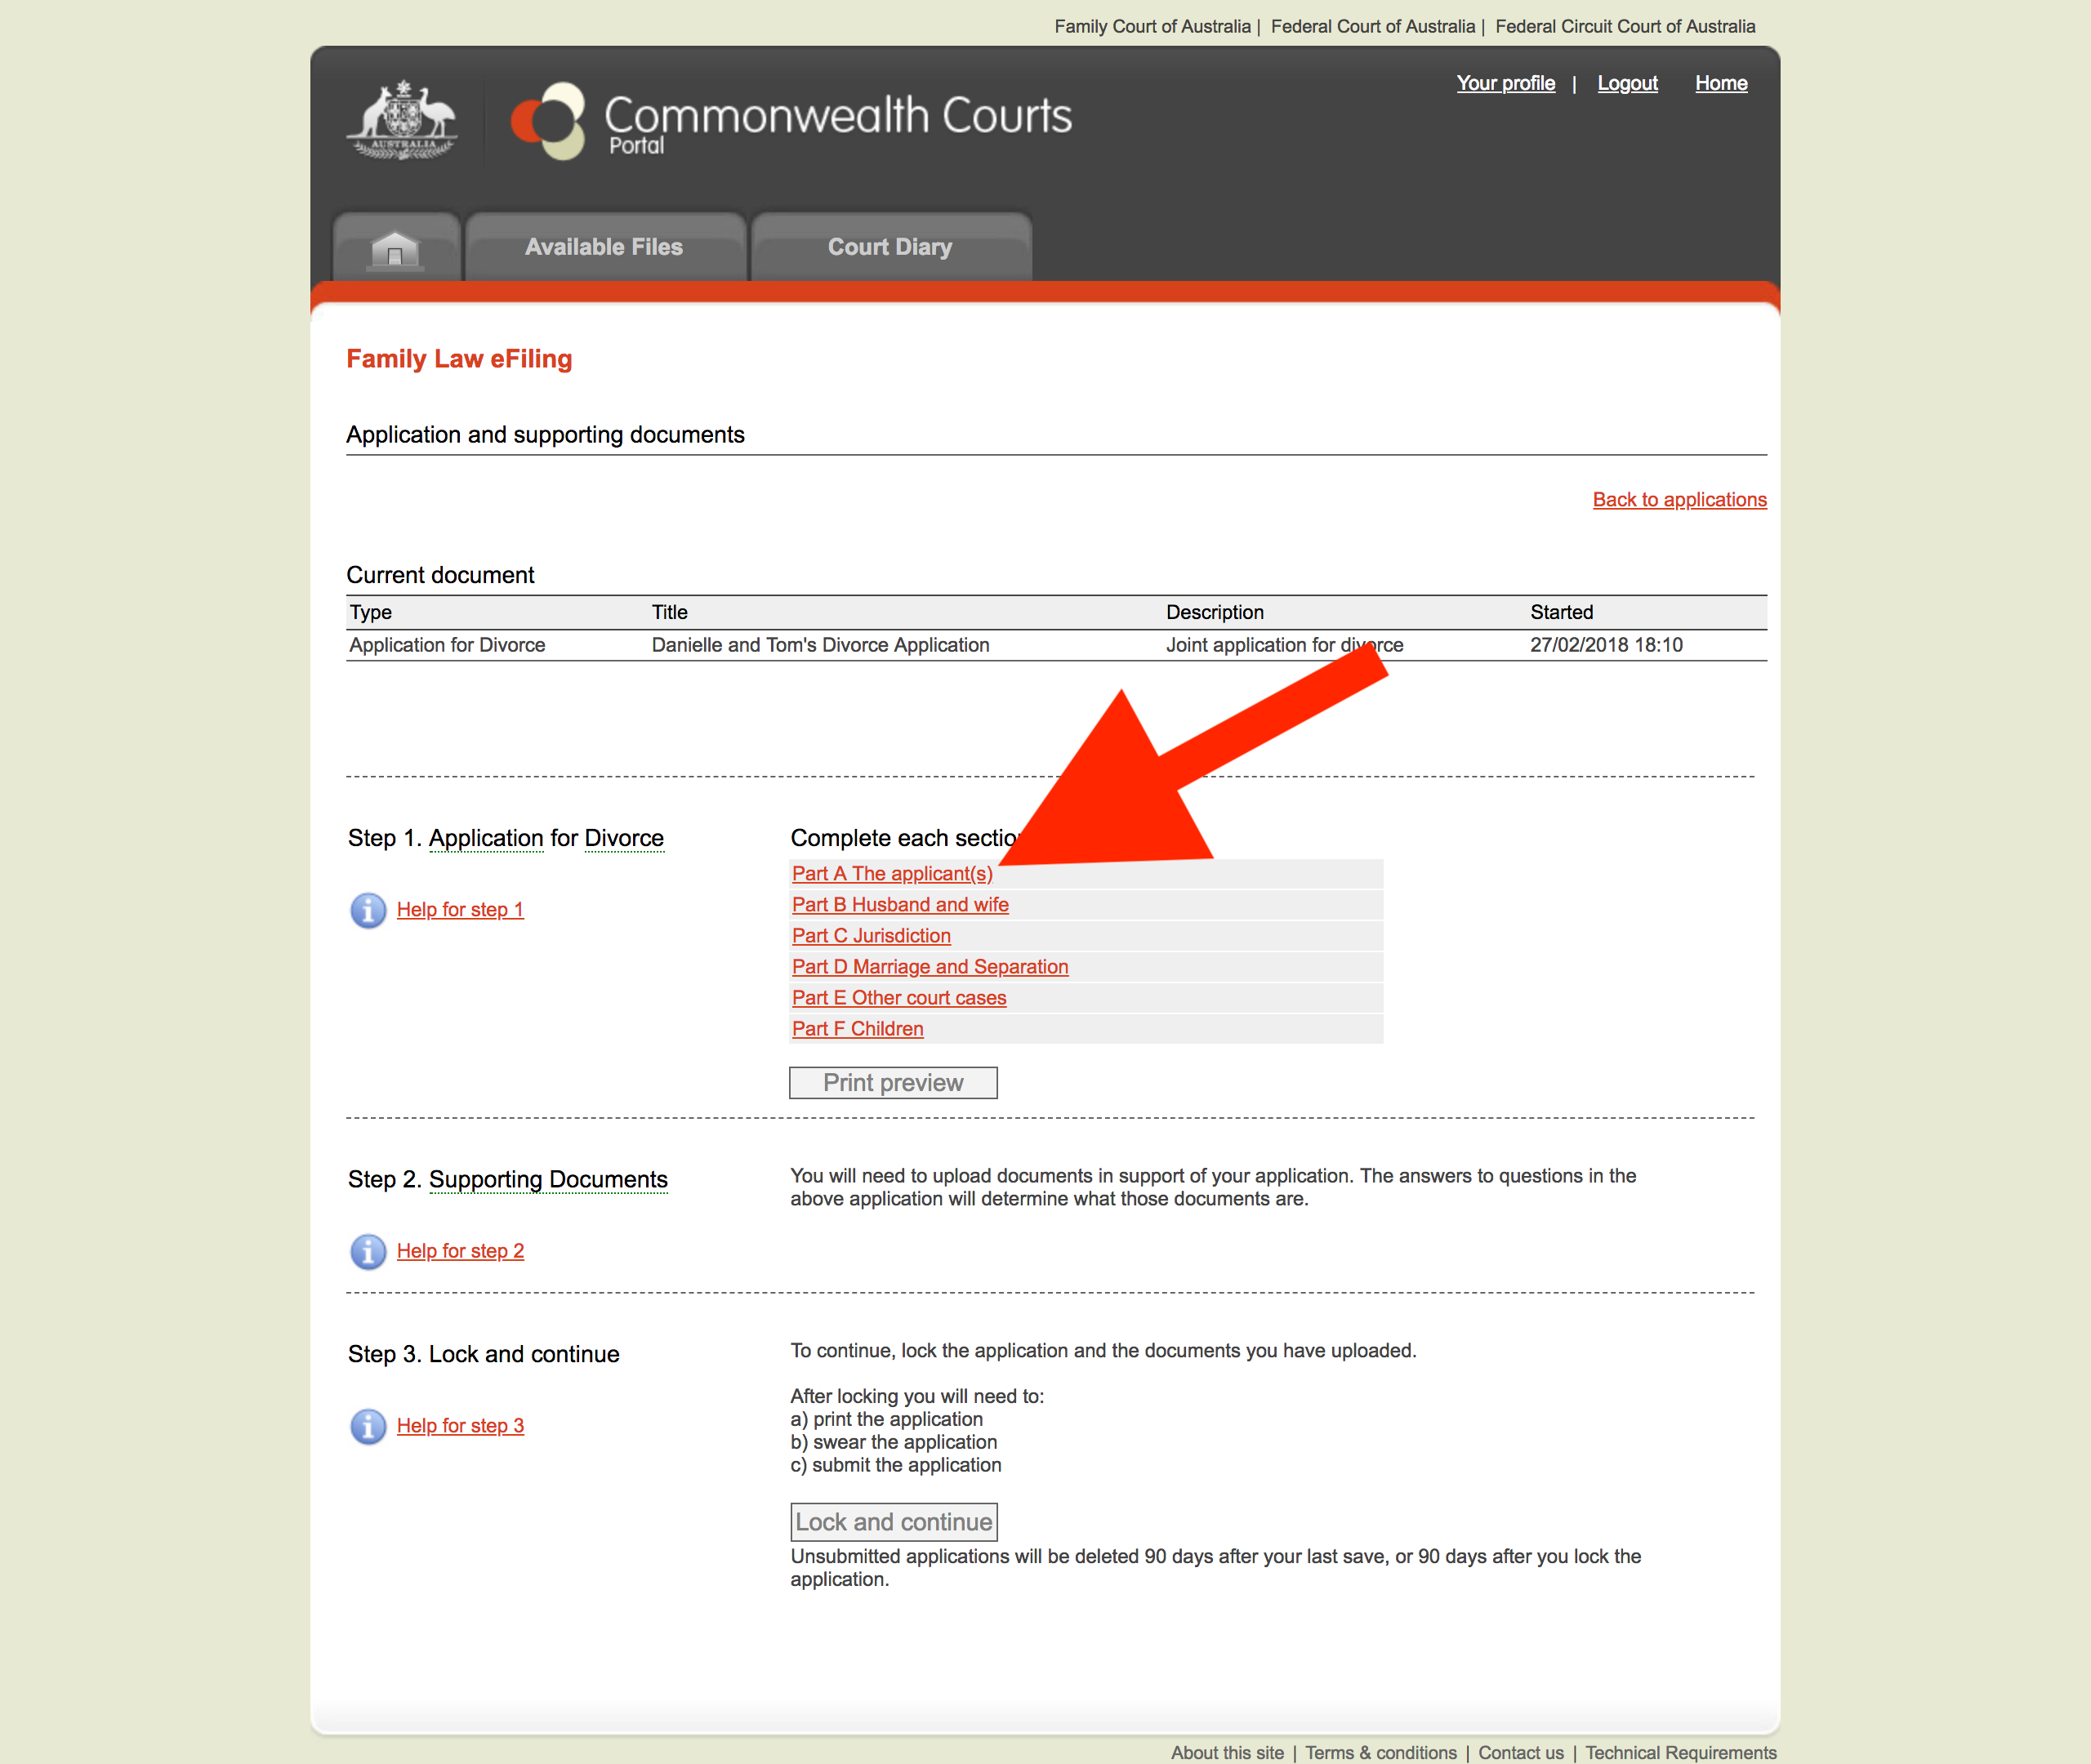 Steps 1-3 commonwealth courts portal